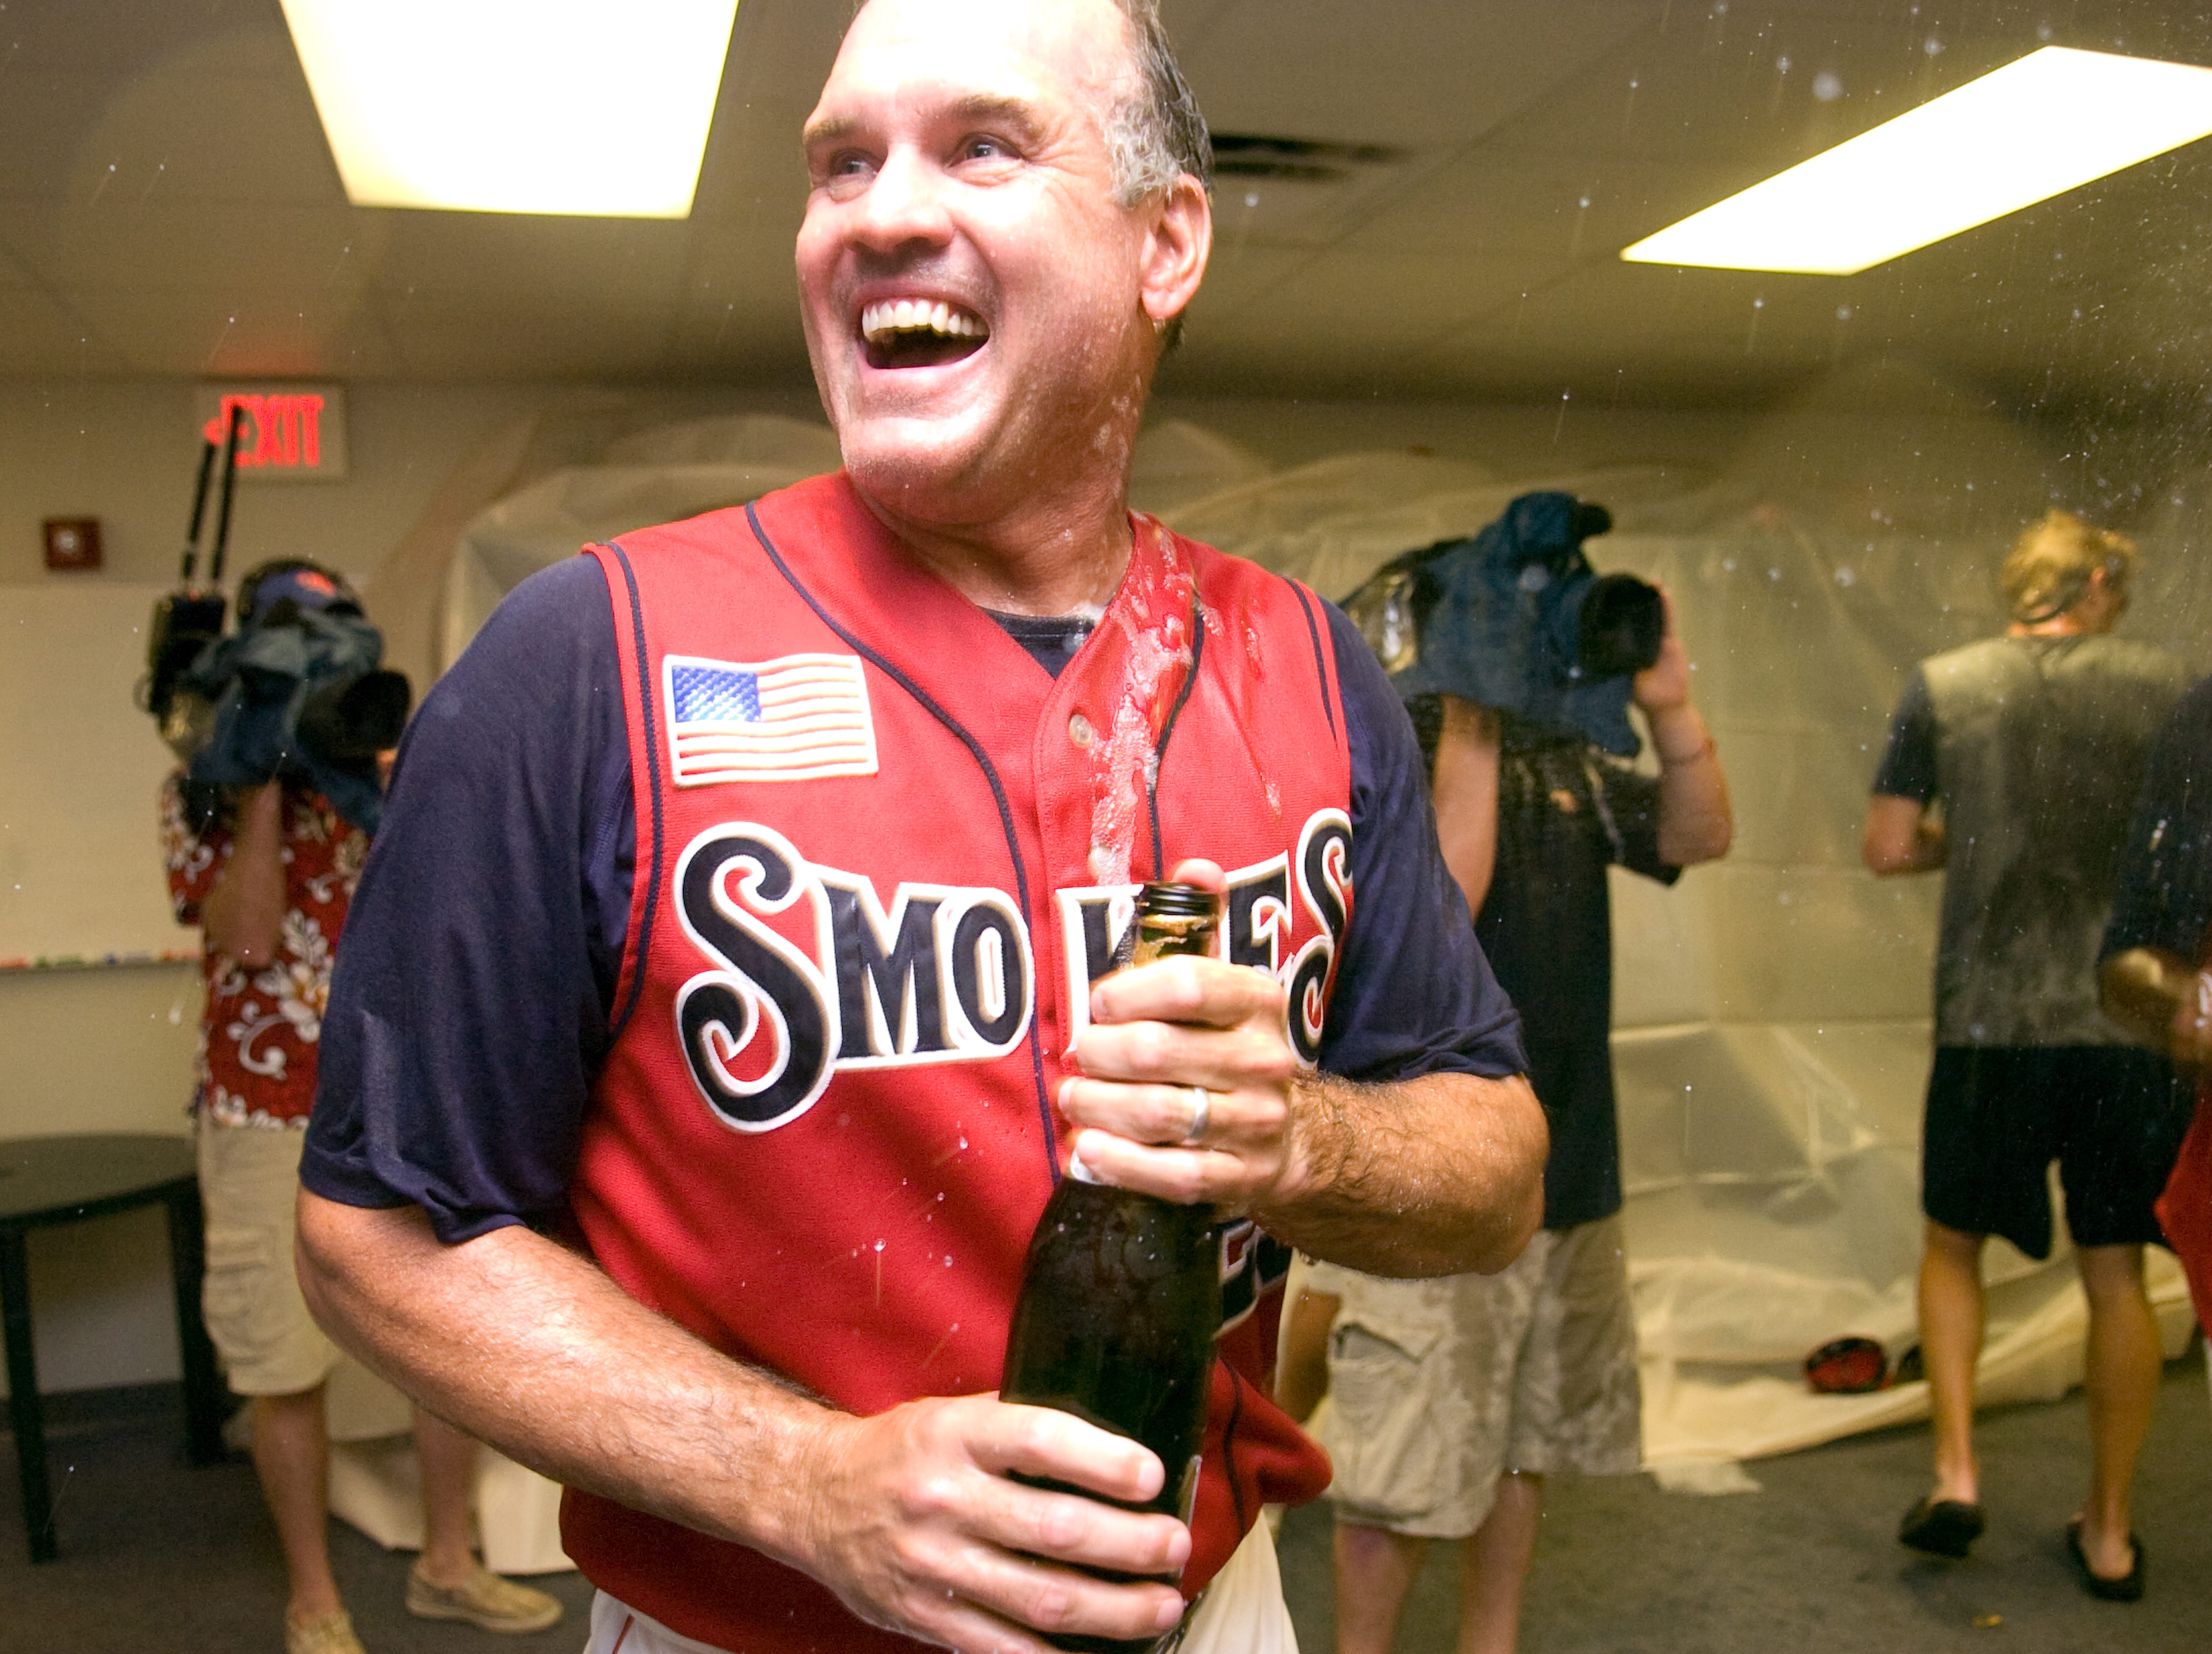 Tennessee Smokies manager Rhyne Sandberg celebrates their win over Huntsville on Sunday, Sept. 13, 2009. The Tennessee Smokies defeat the Huntsville 3-1 to win the Northern Division Southern League title.